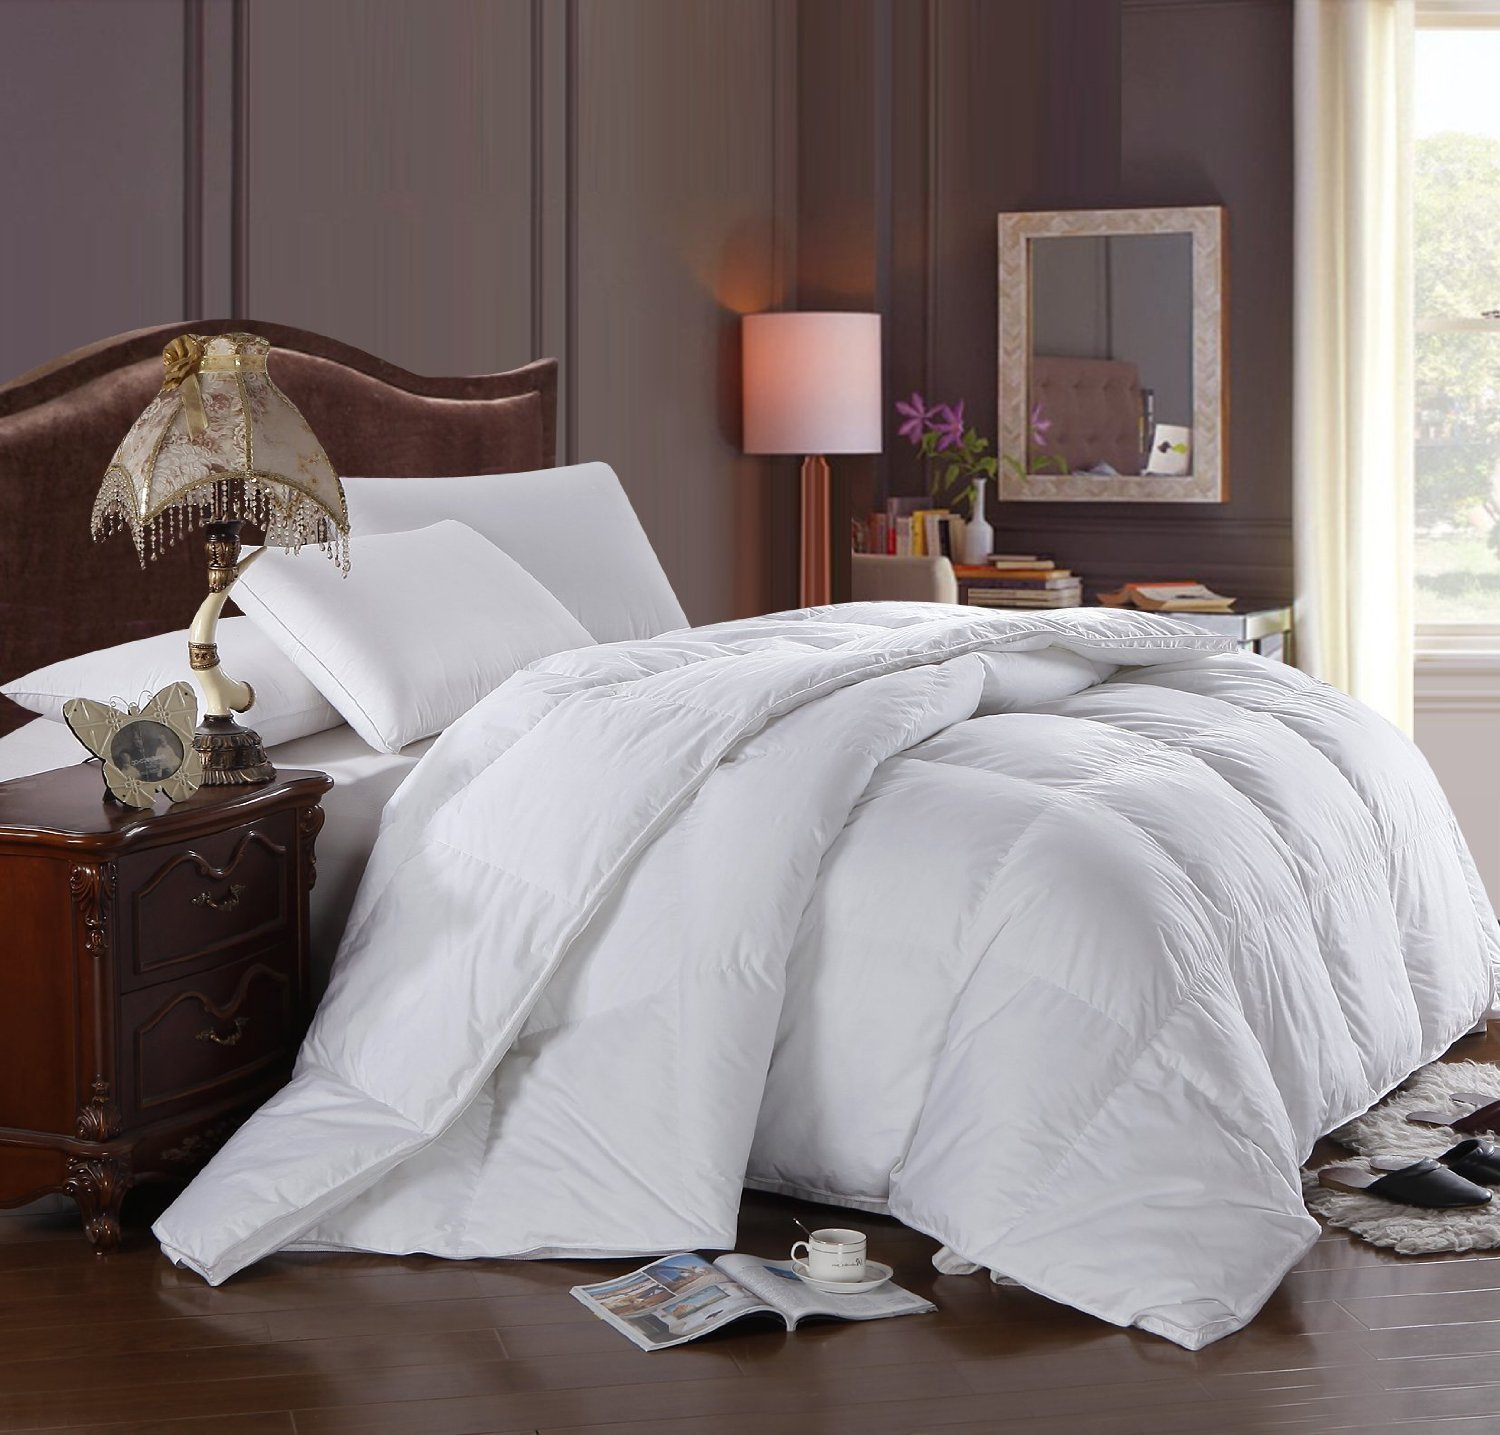 Amazon Com Royal Hotel Super Oversized Soft And Fluffy Goose Down